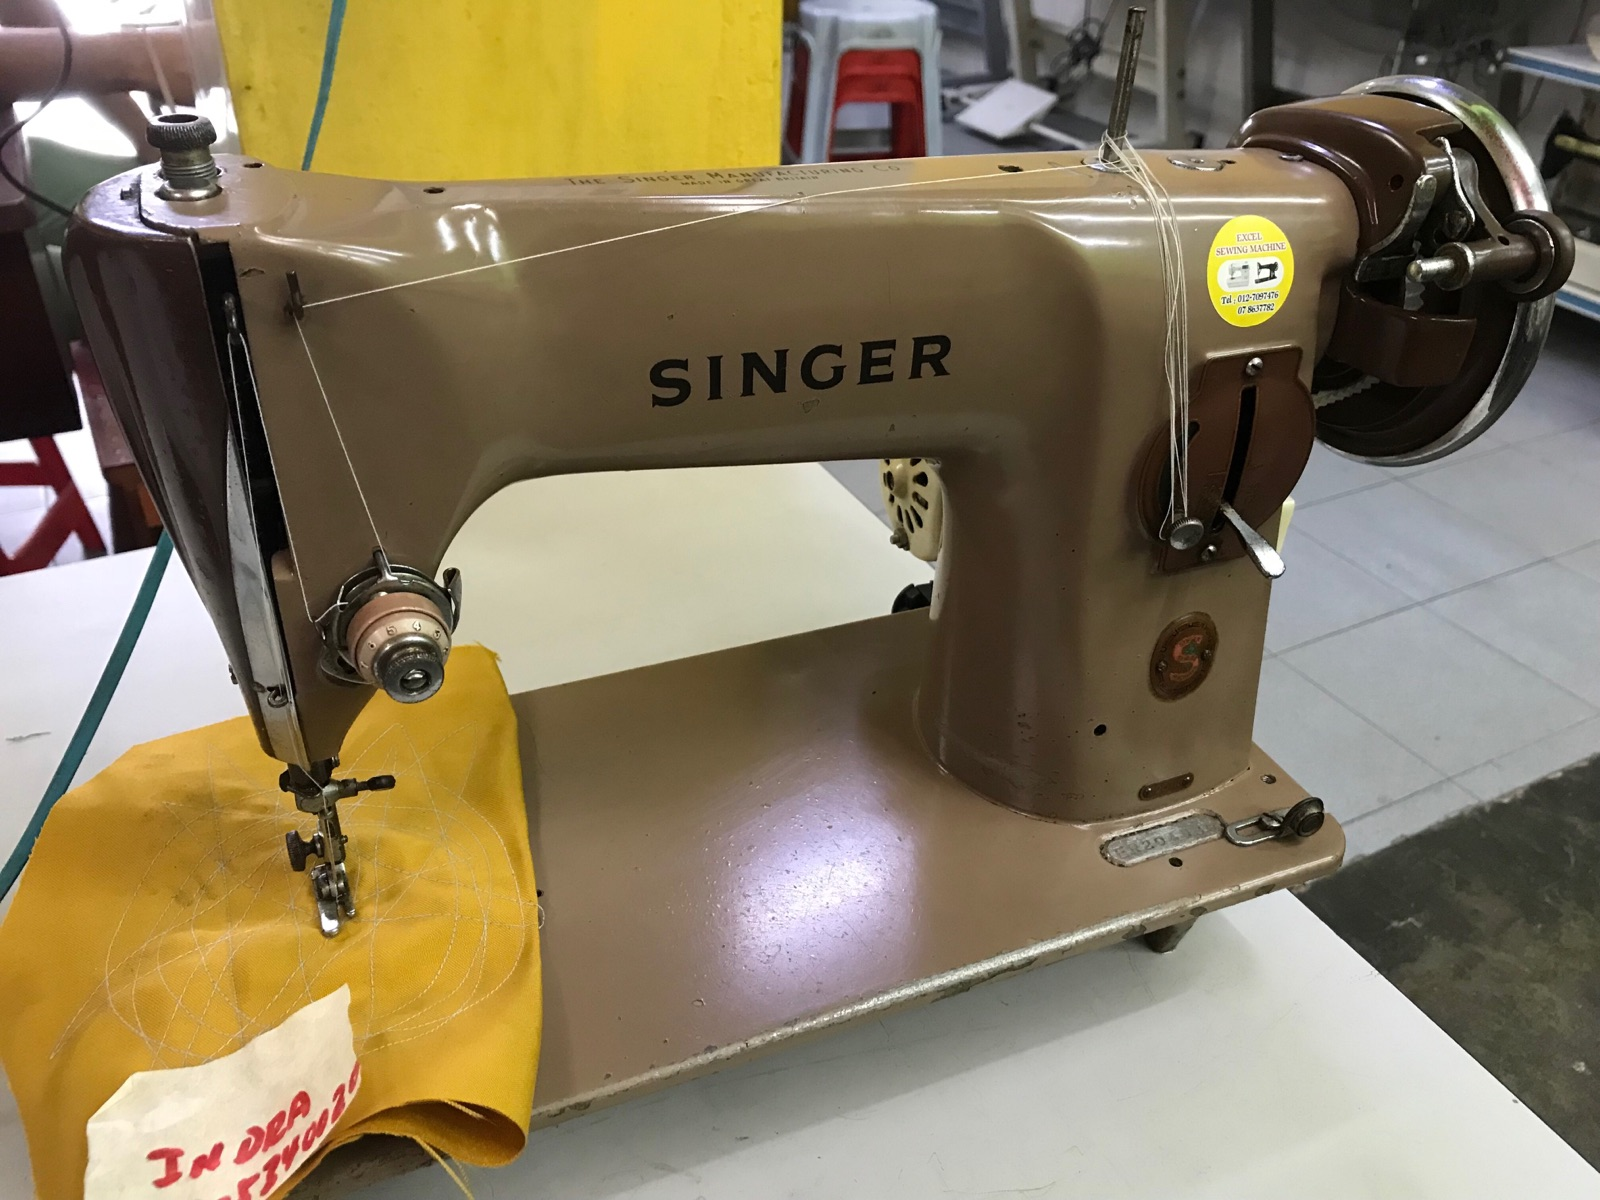 Repair Dan Sevis Anti Sewing Machine